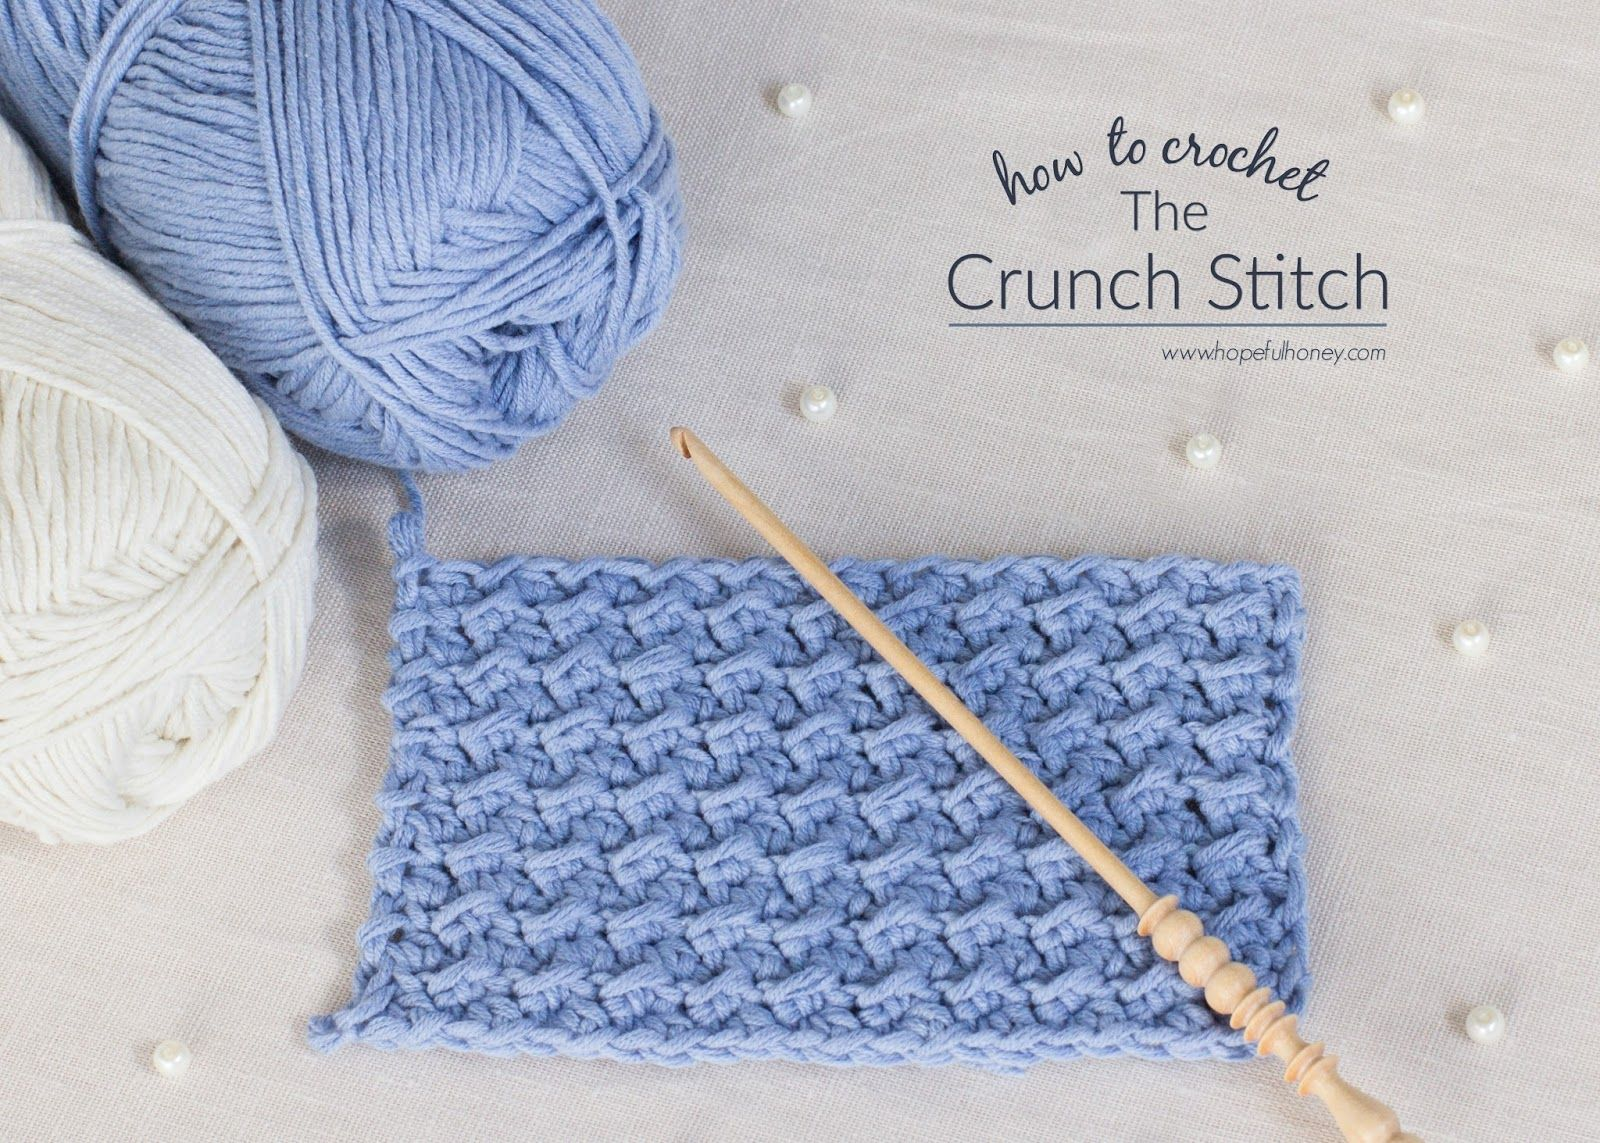 How To: Crochet The Crunch Stitch - Easy Tutorial | Häkeln ...